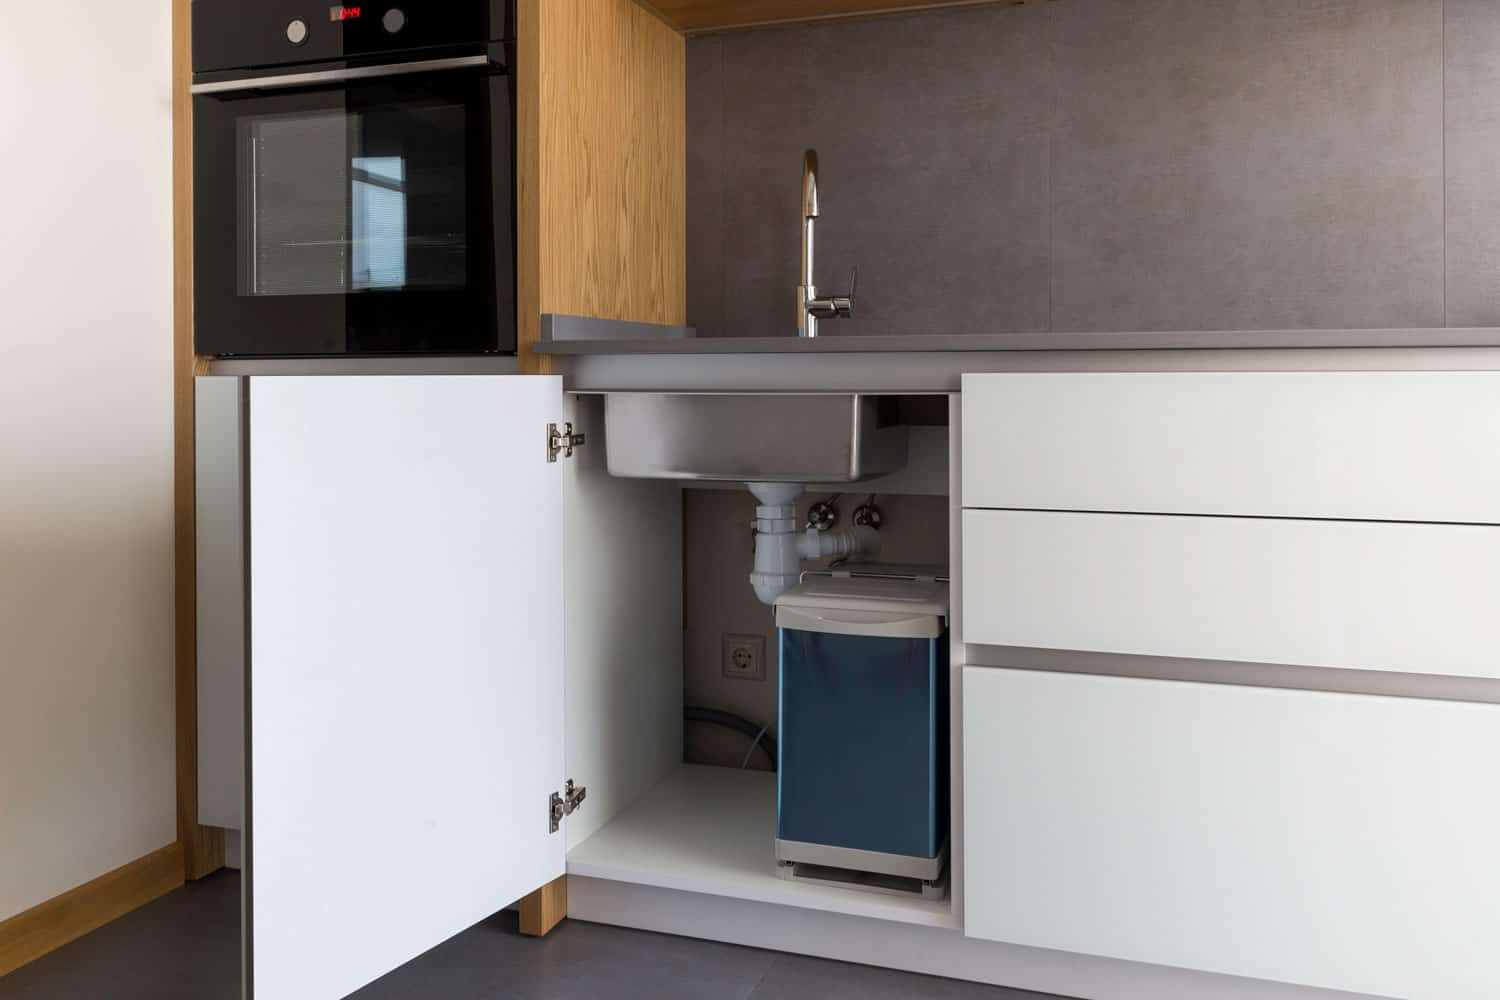 An opened kitchen cabinet with a kitchen sink underneath